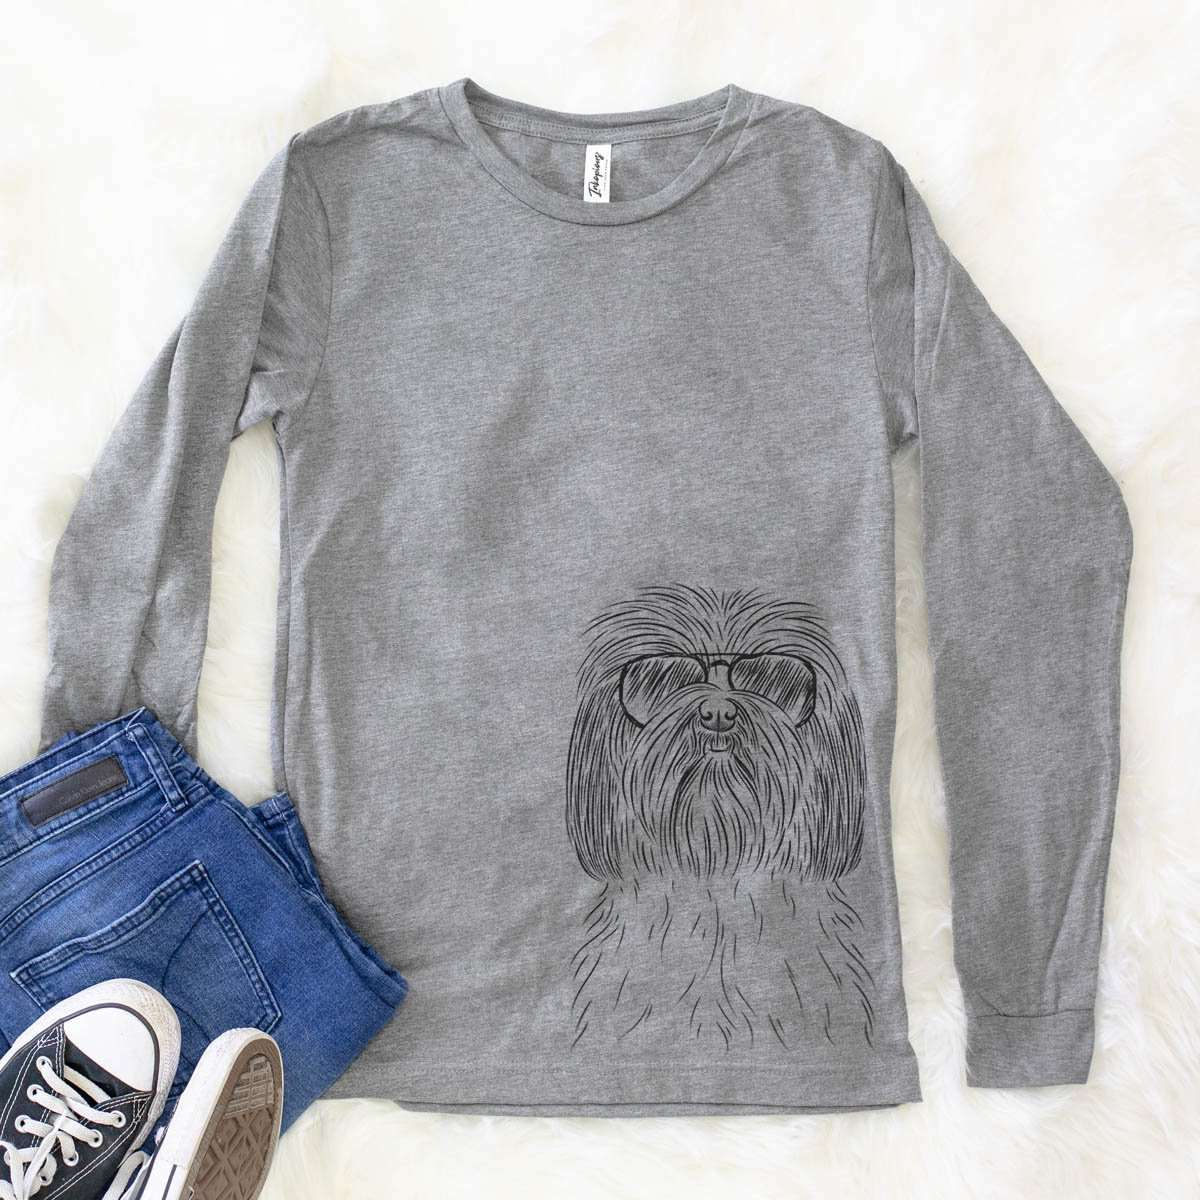 Scully the Shih Tzu - Long Sleeve Crewneck